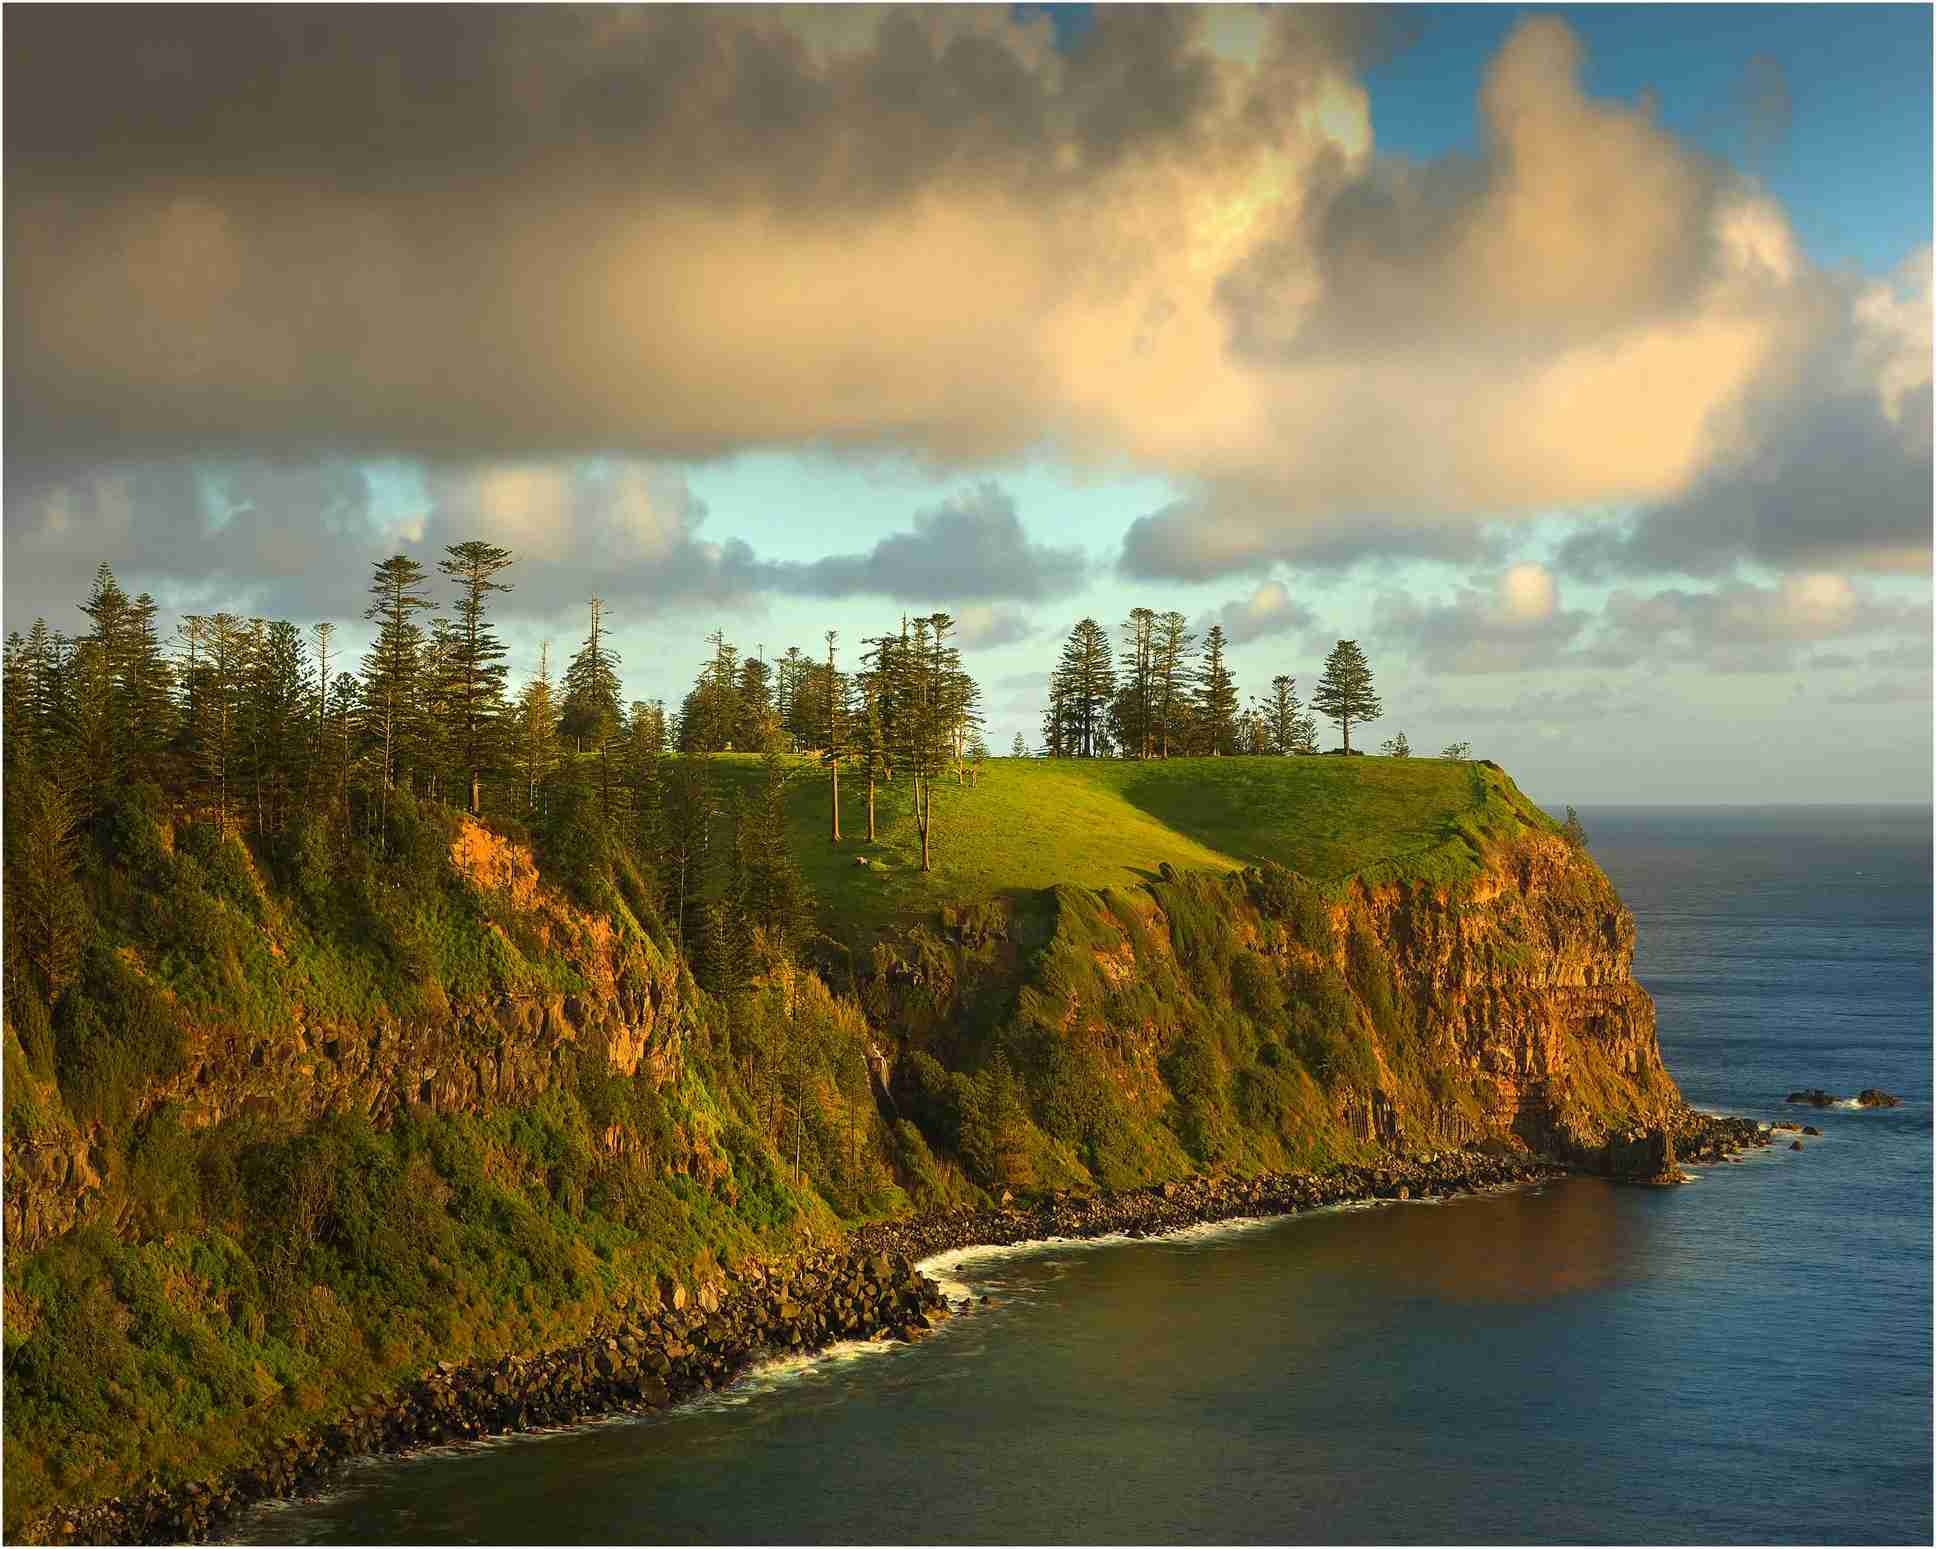 Image of Norfolk Island, Australia, by Southern Lightscapes-Australia/Getty Images.